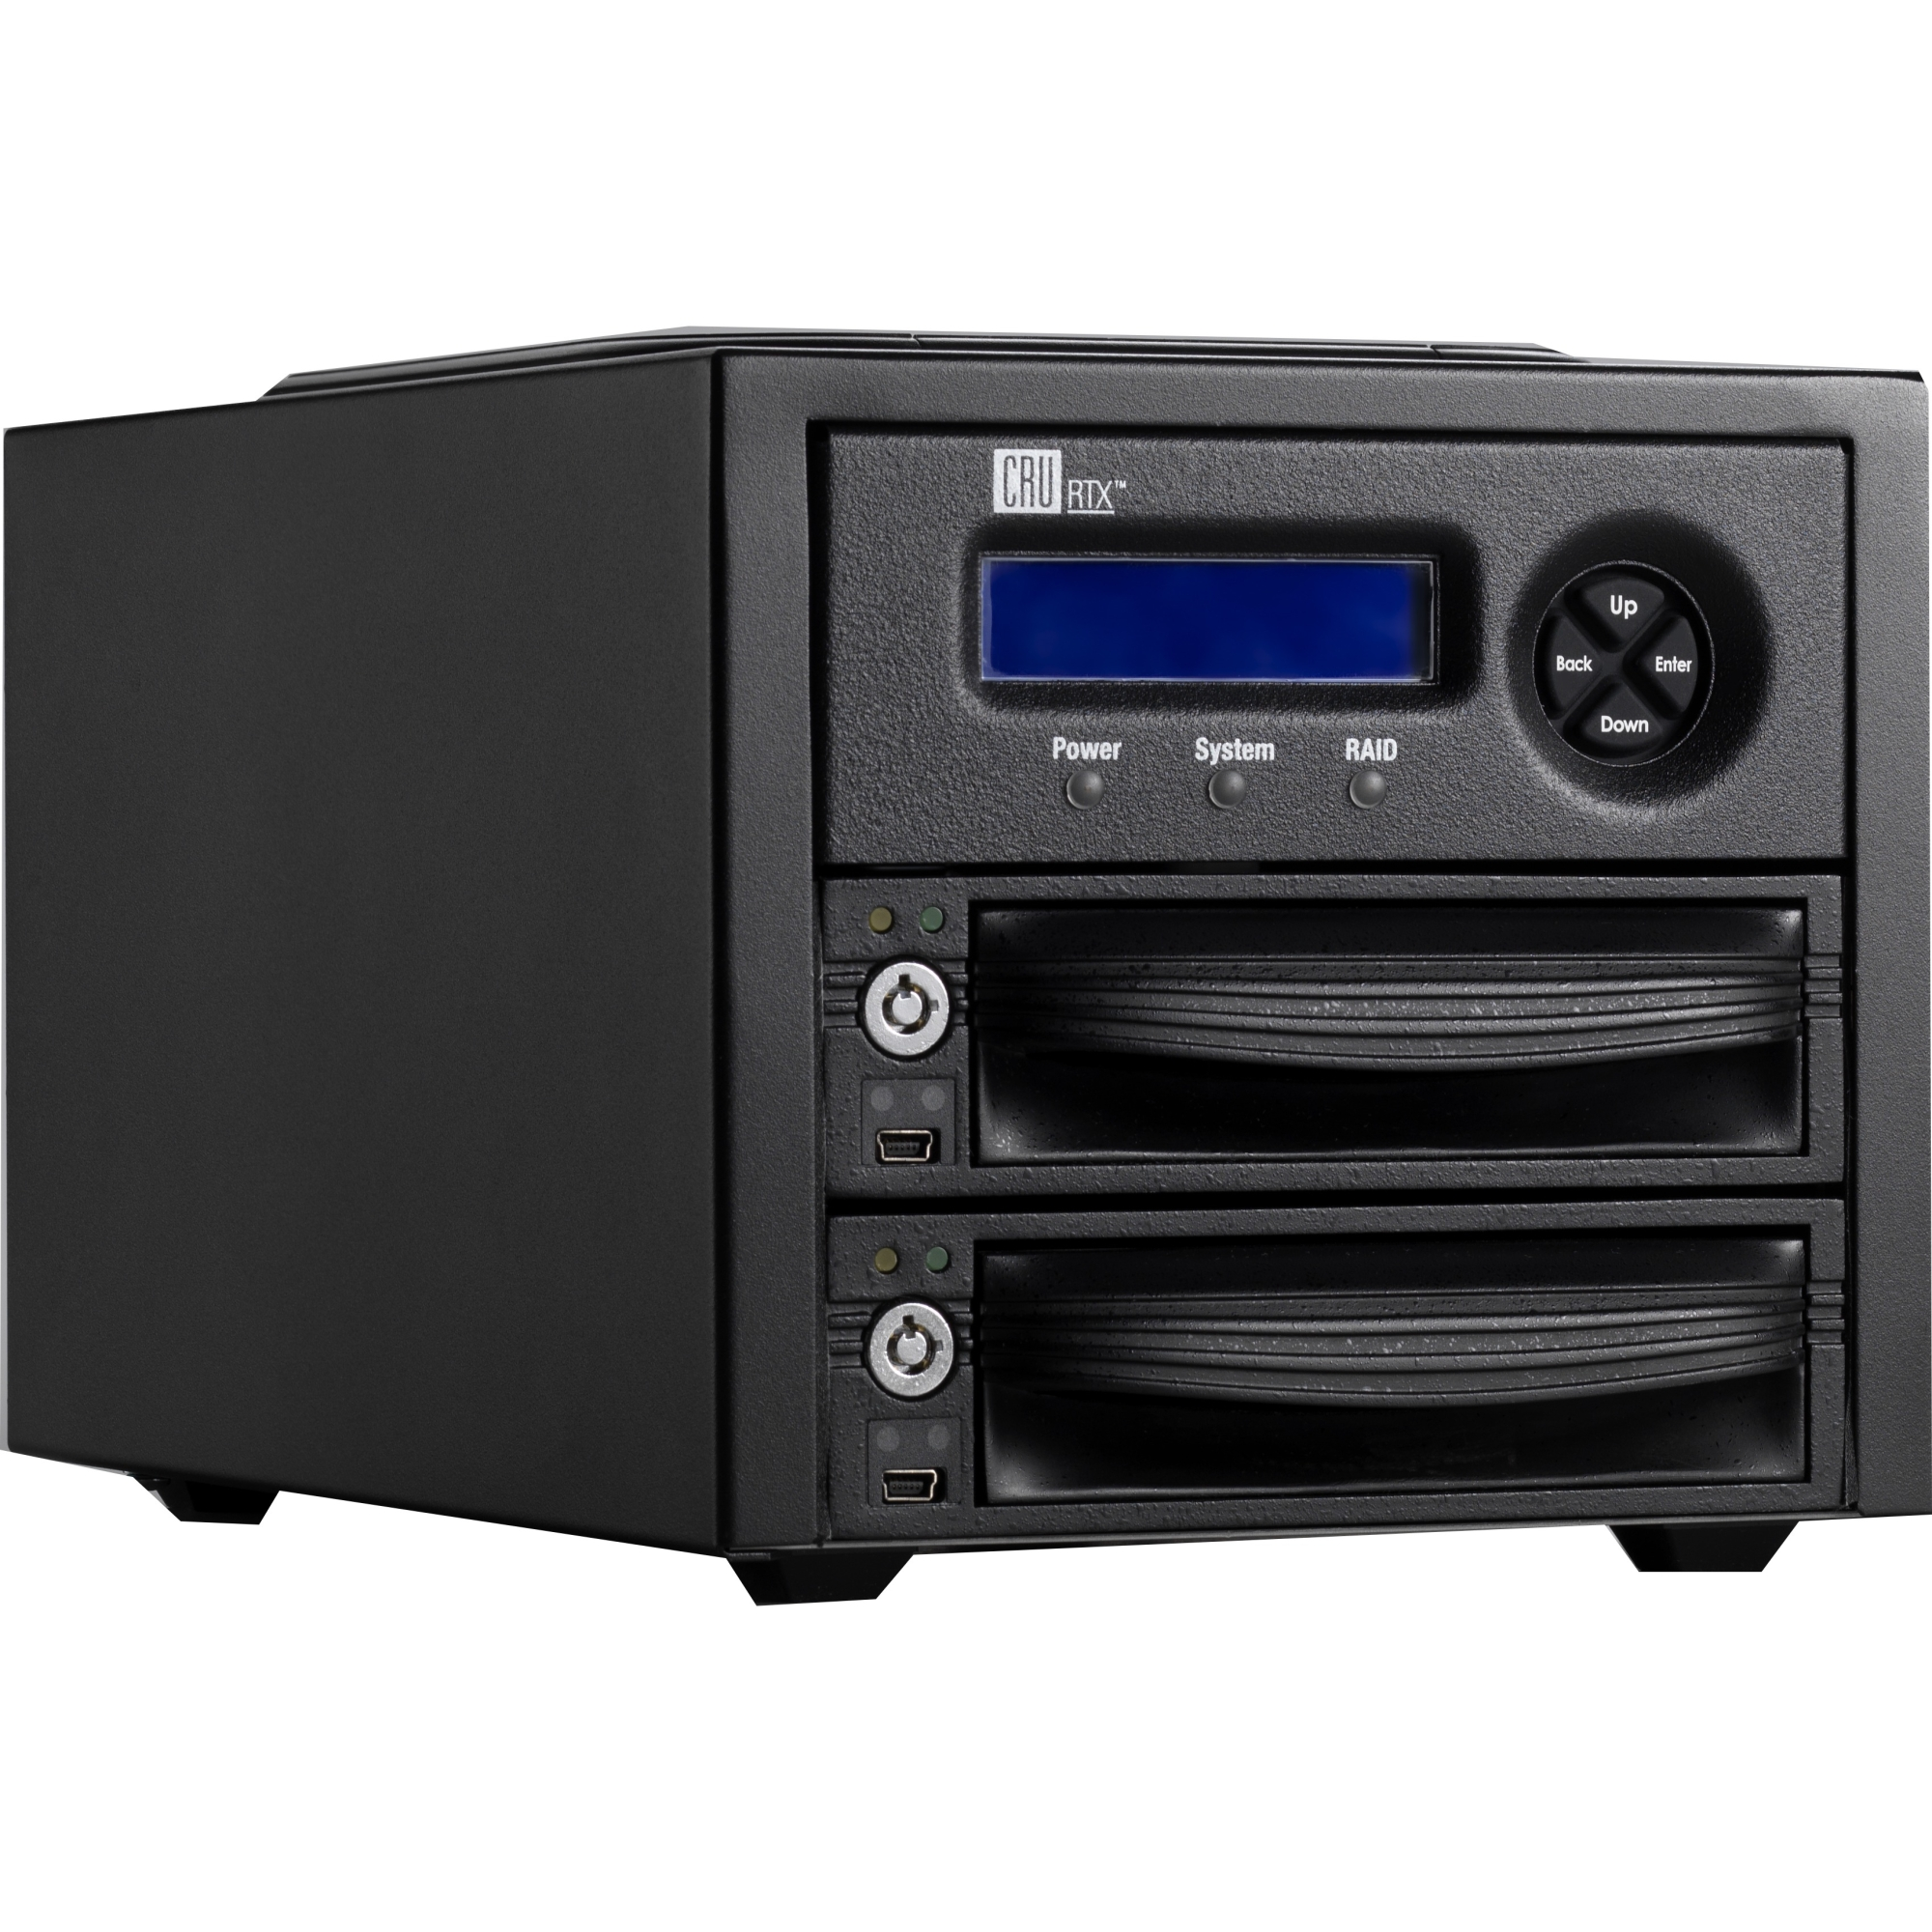 RTX Secure 222-3QR DAS Array - 2 x HDD Supported - Serial ATA/150 Controller - 2 x Total Bays - FireWire/i.LINK 800 USB 3.0 eSATA Tower